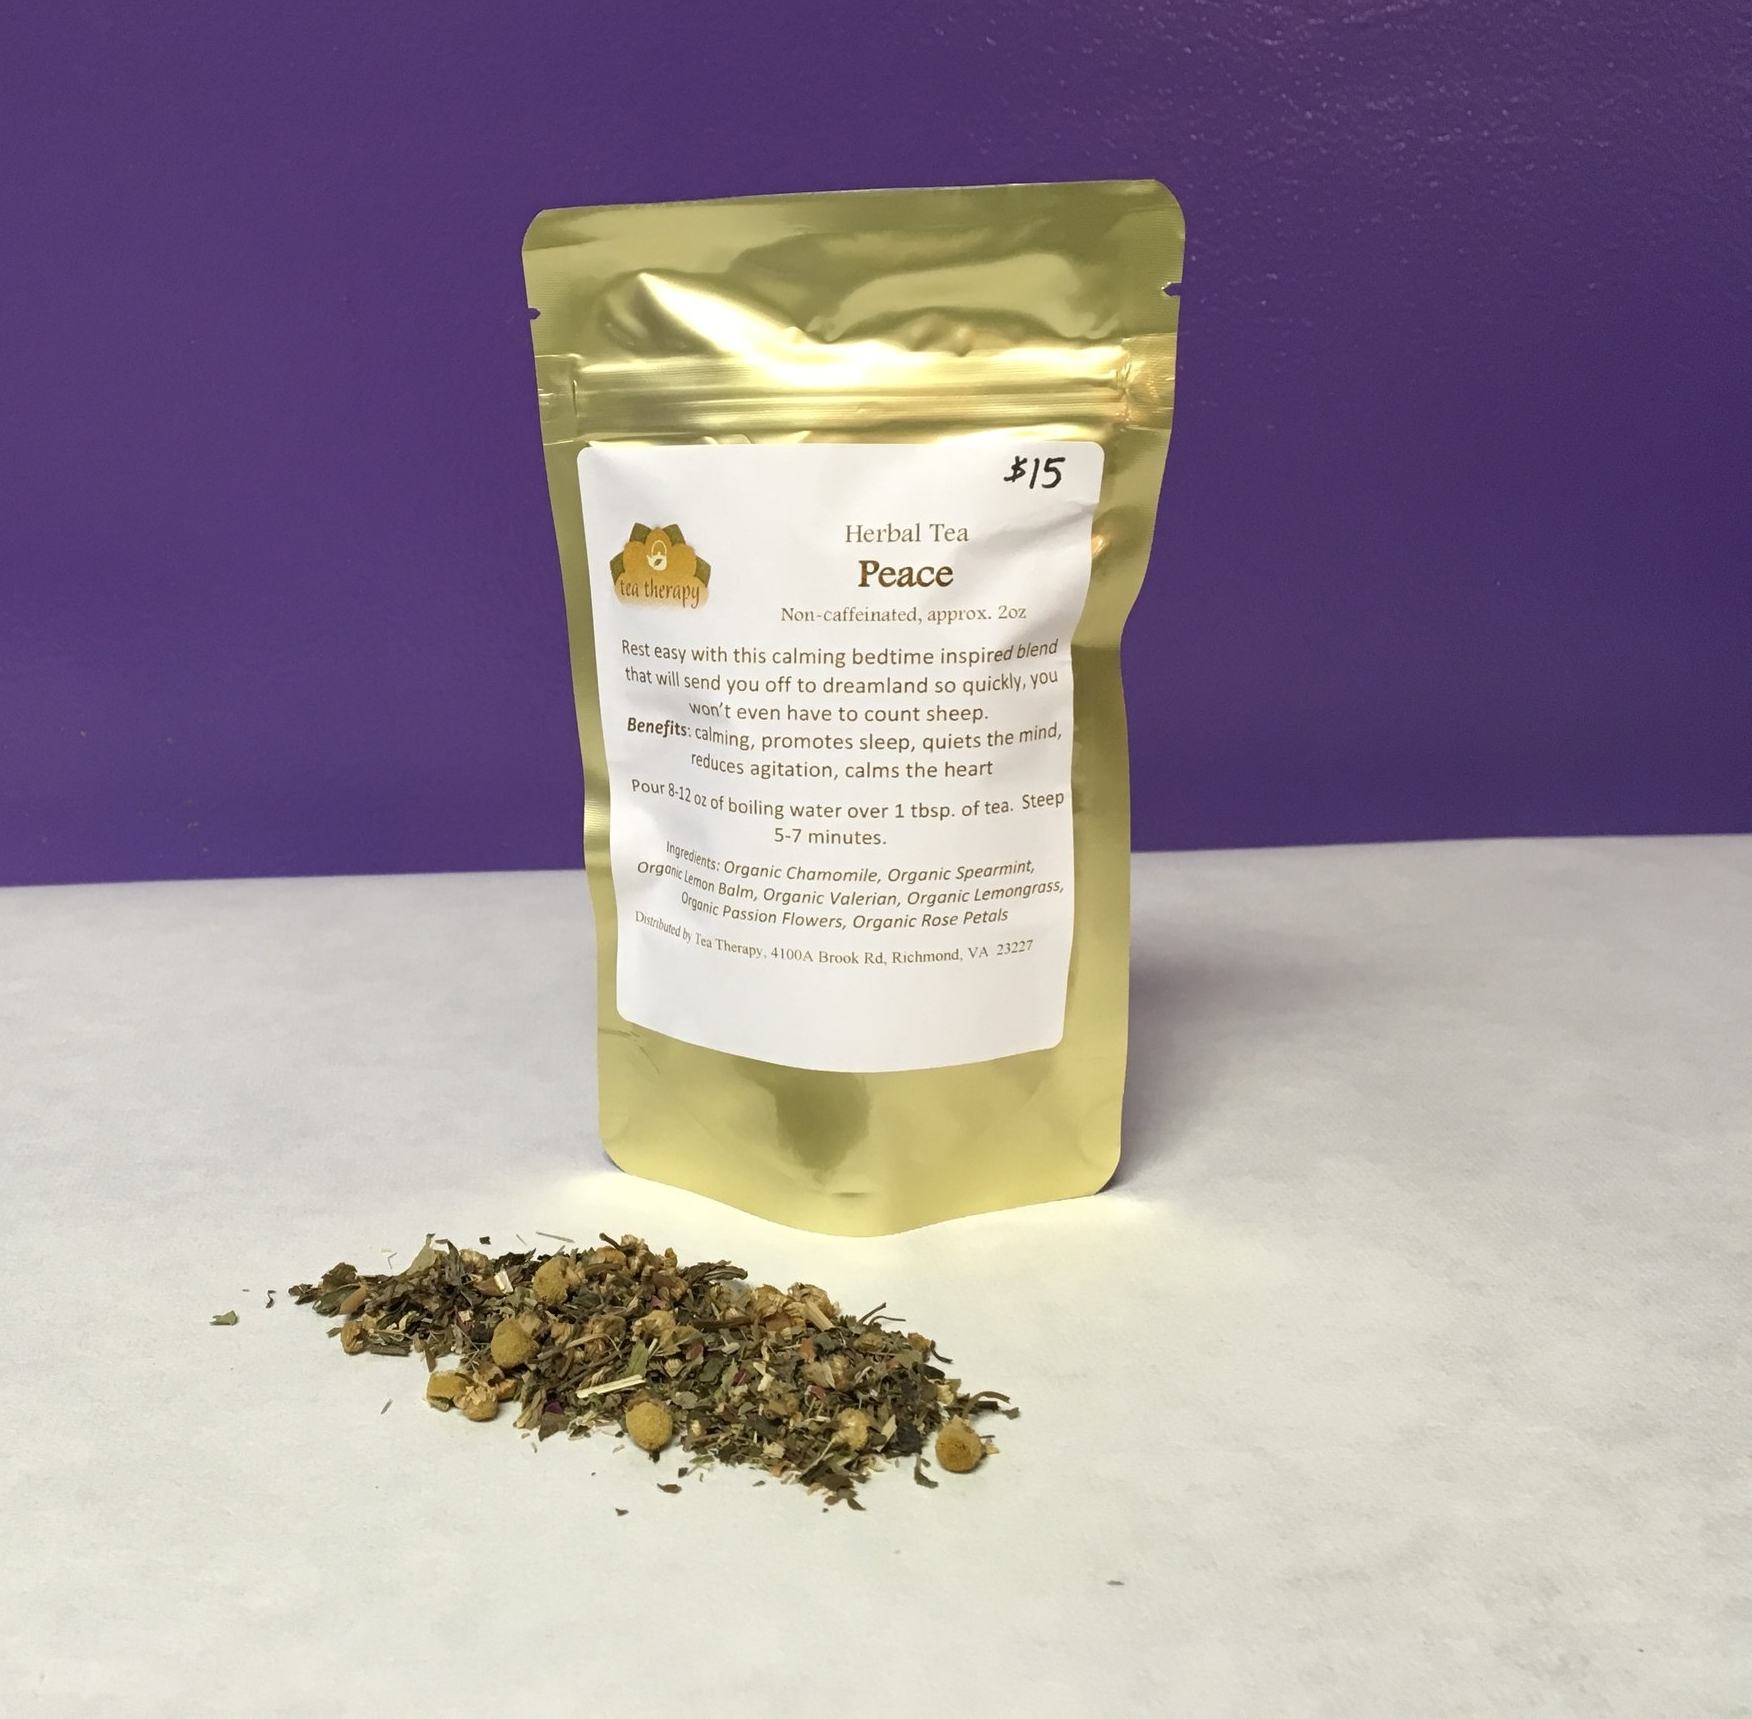 Peace - Herbal tea – non-caffeinated - Rest easy with this calming bedtime inspired blend that will send you off to dreamland so quickly, you won't even have to count sheep. Benefits: calming, promotes sleep, quiets the mind, reduces agitation, calms the heart. Ingredients: Organic Chamomile, Organic Spearmint, Organic Lemon Balm, Organic Valerian, Organic Lemongrass, Organic Passion Flowers, Organic Rose Petals